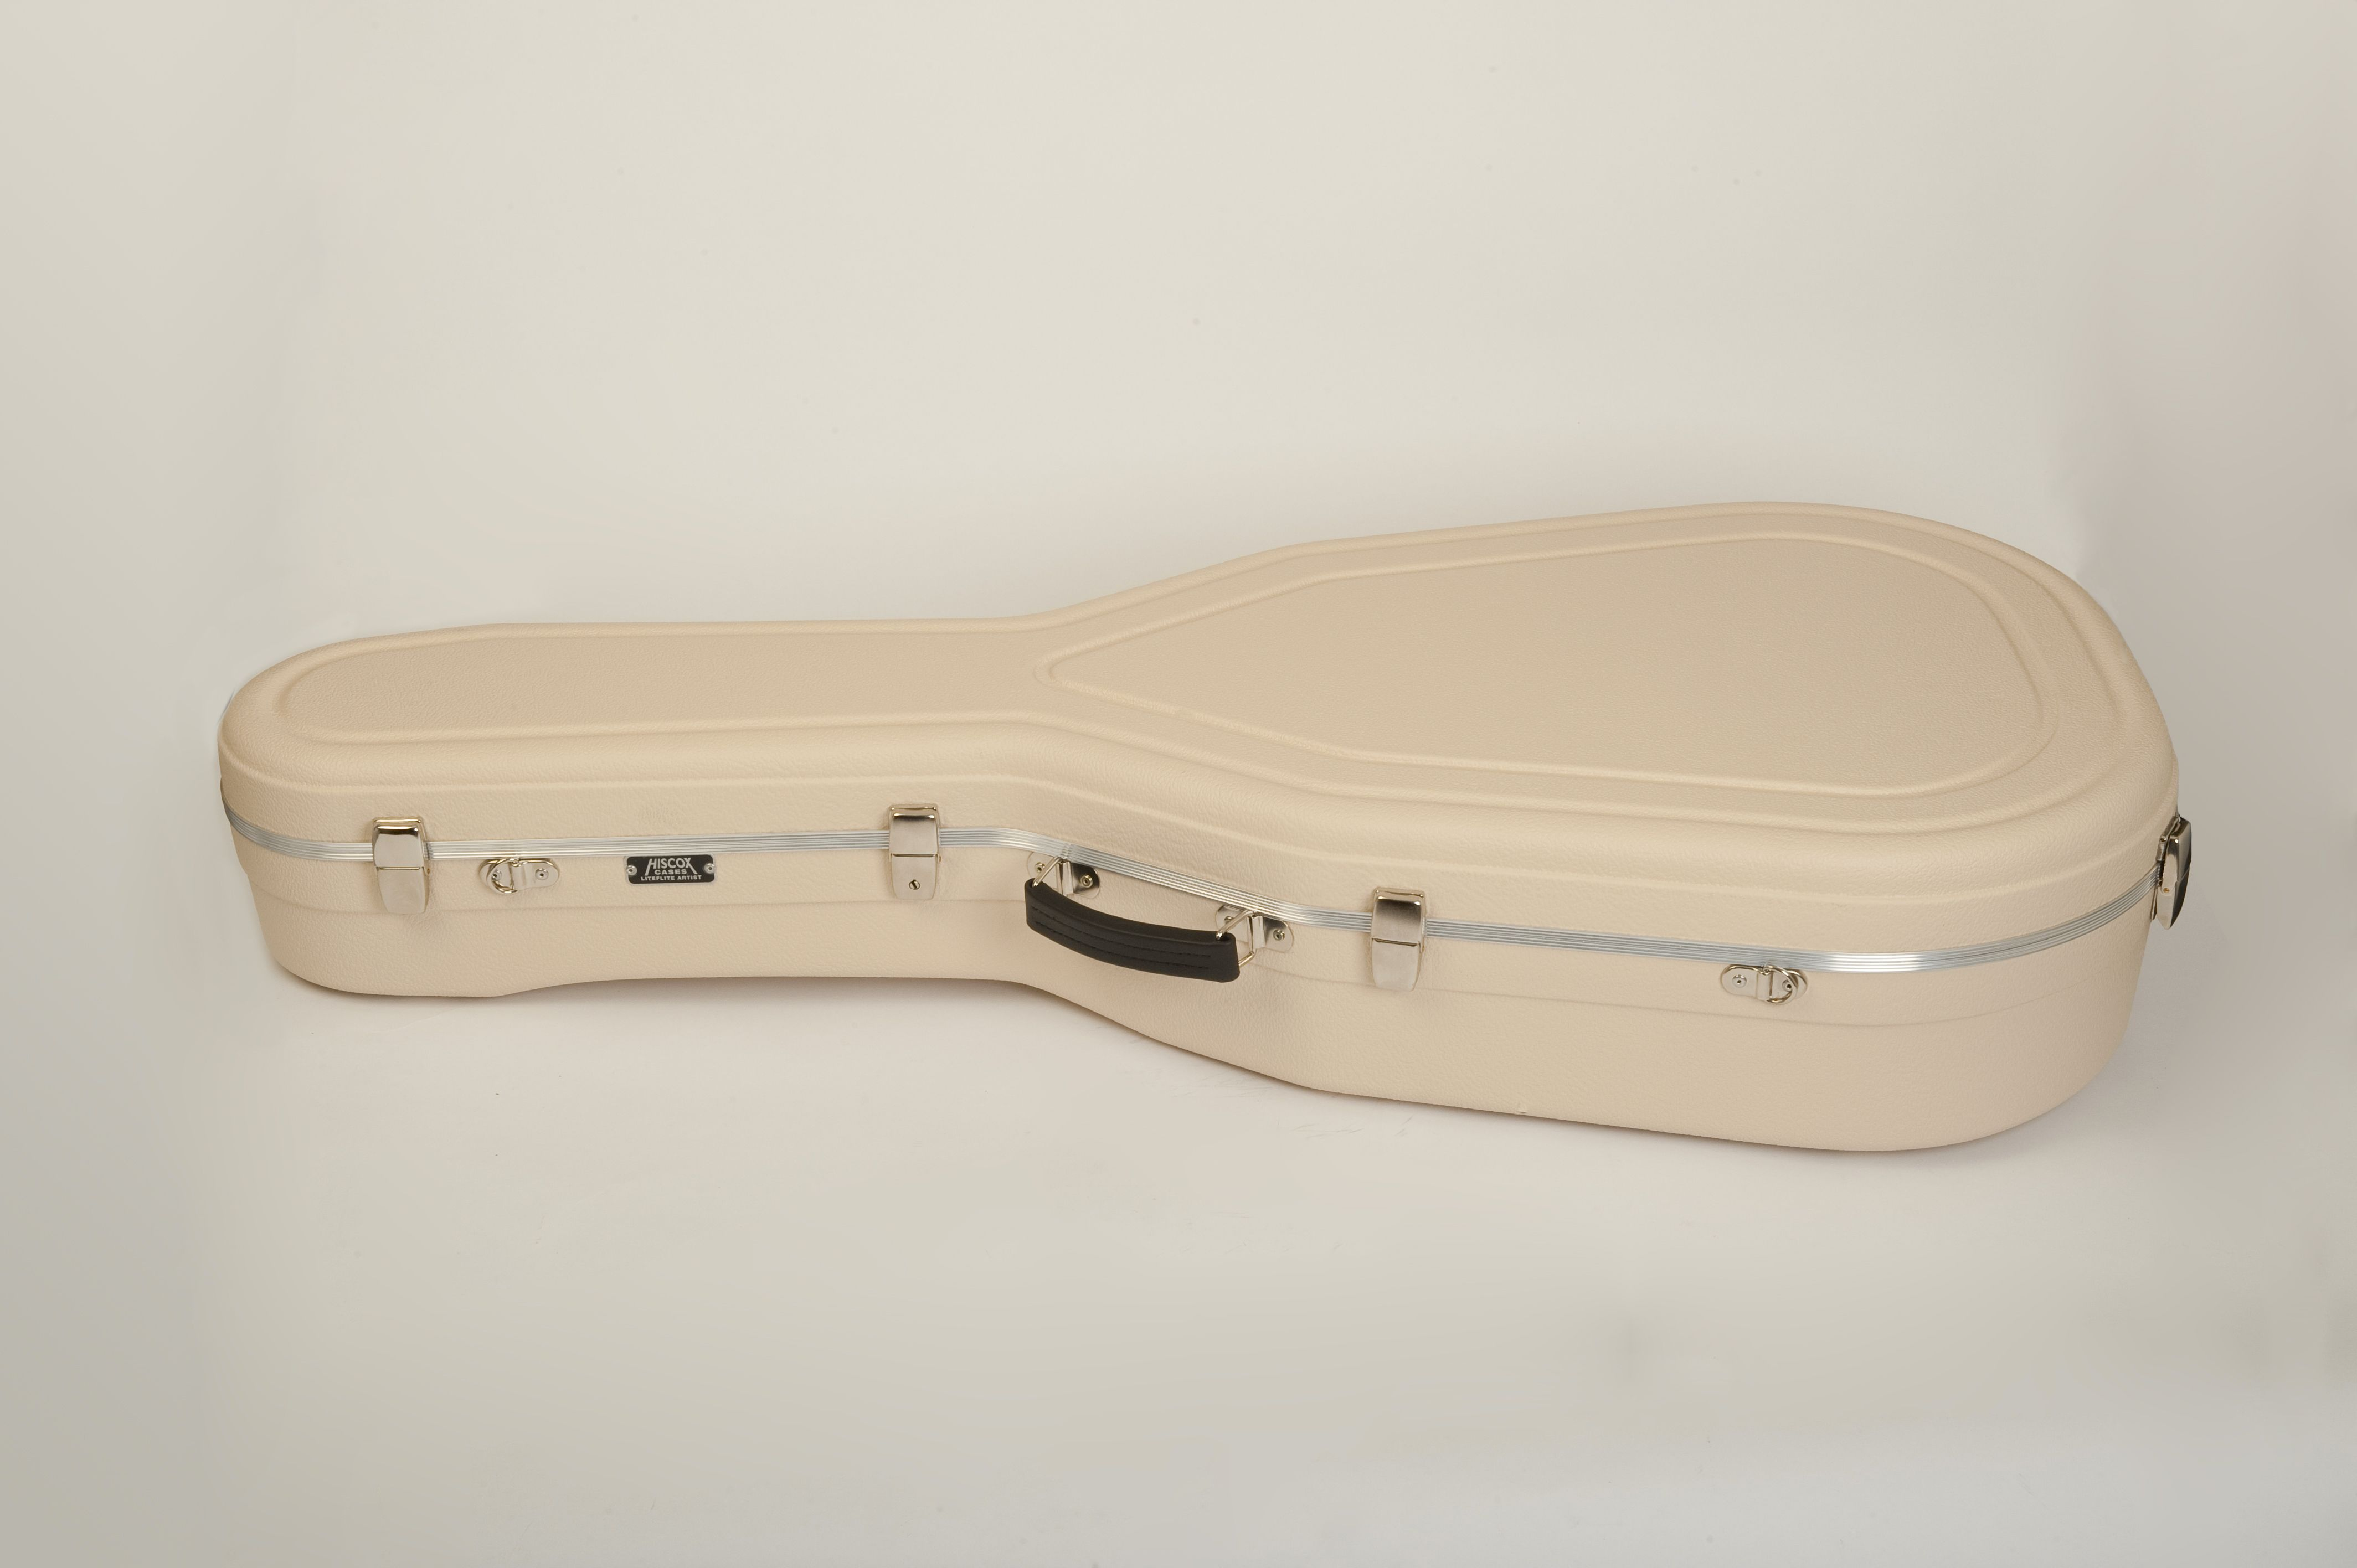 Artist Jumbo Acoustic Style Guitar Case Hiscox Cases Hard Shell Case Protect Your Guitar Ivory Guitar Case Acoustic Guitar Case Case